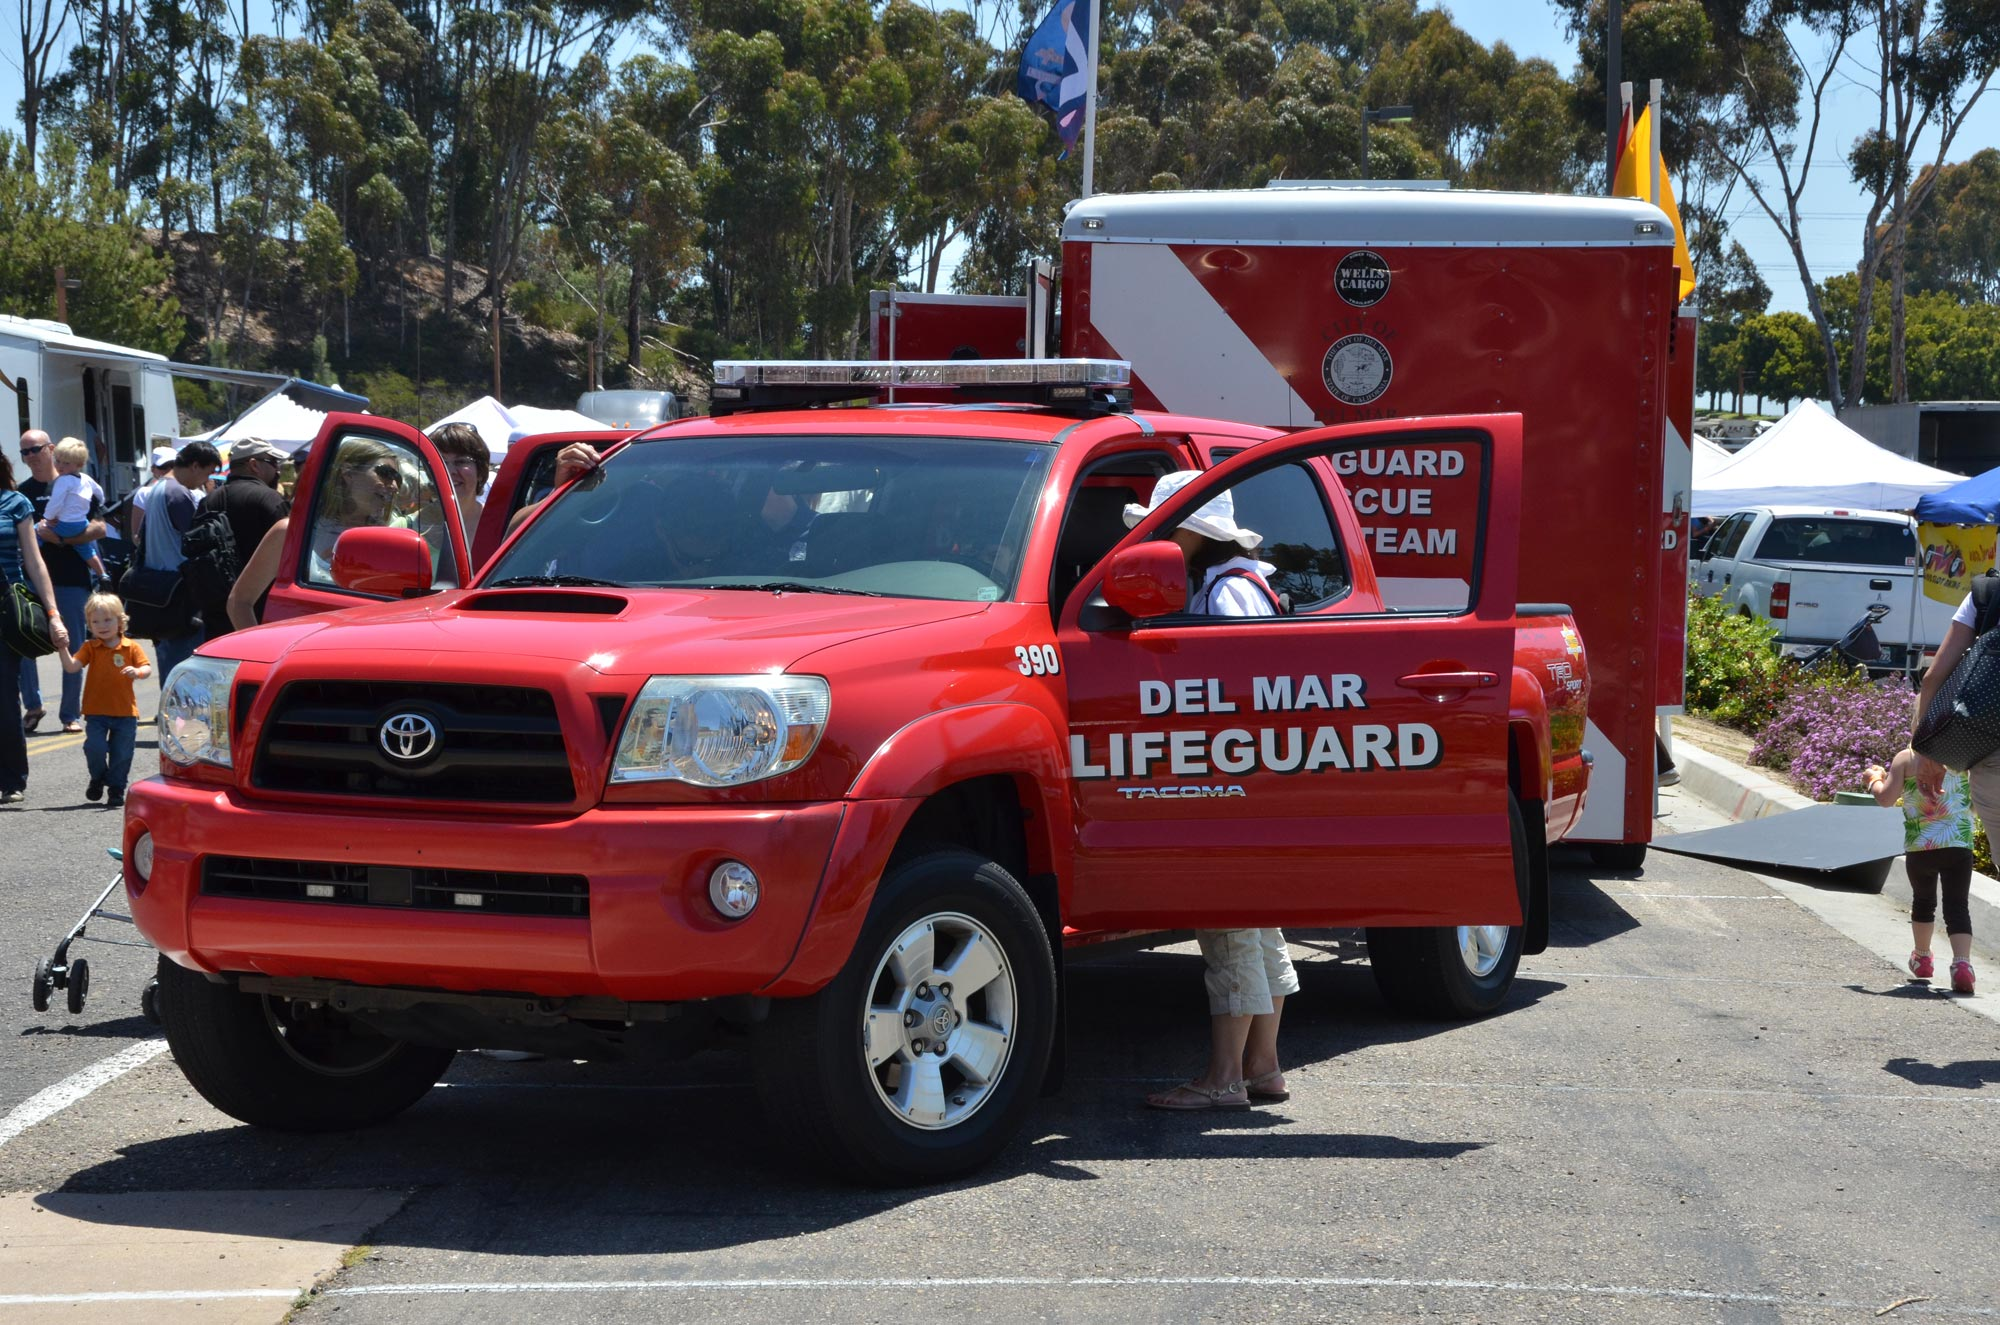 Lifeguard truck, trailer, & rescue boat